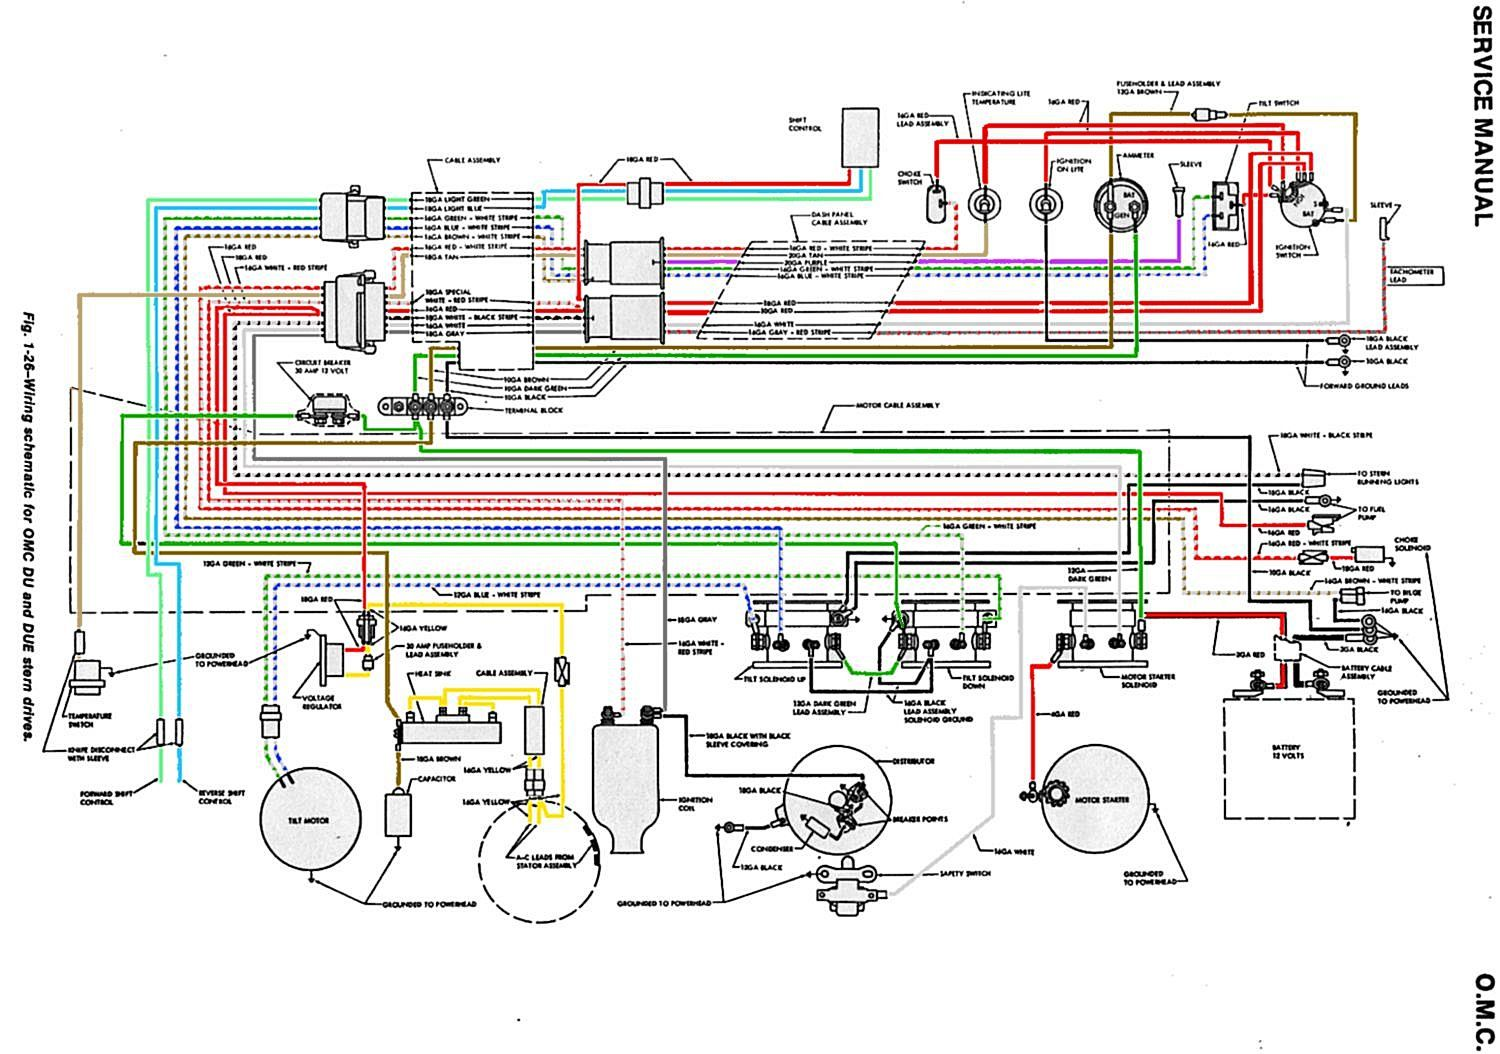 omc wiring diagrams online schematics diagram rh delvato co Motorguide 24 Volt Wiring Diagram Motorguide Foot Wiring-Diagram